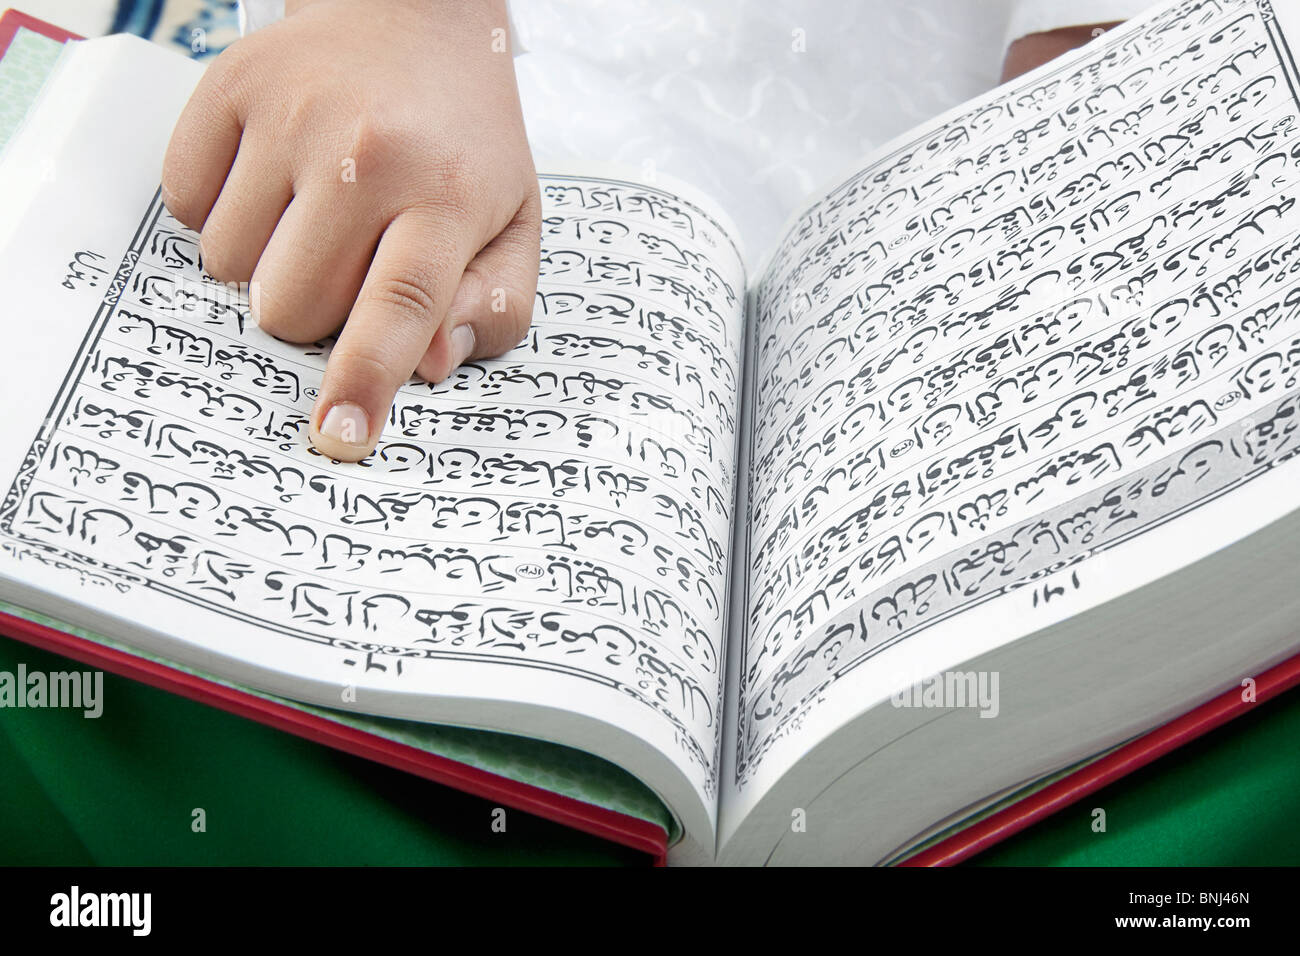 Muslim boy reading the Quran - Stock Image